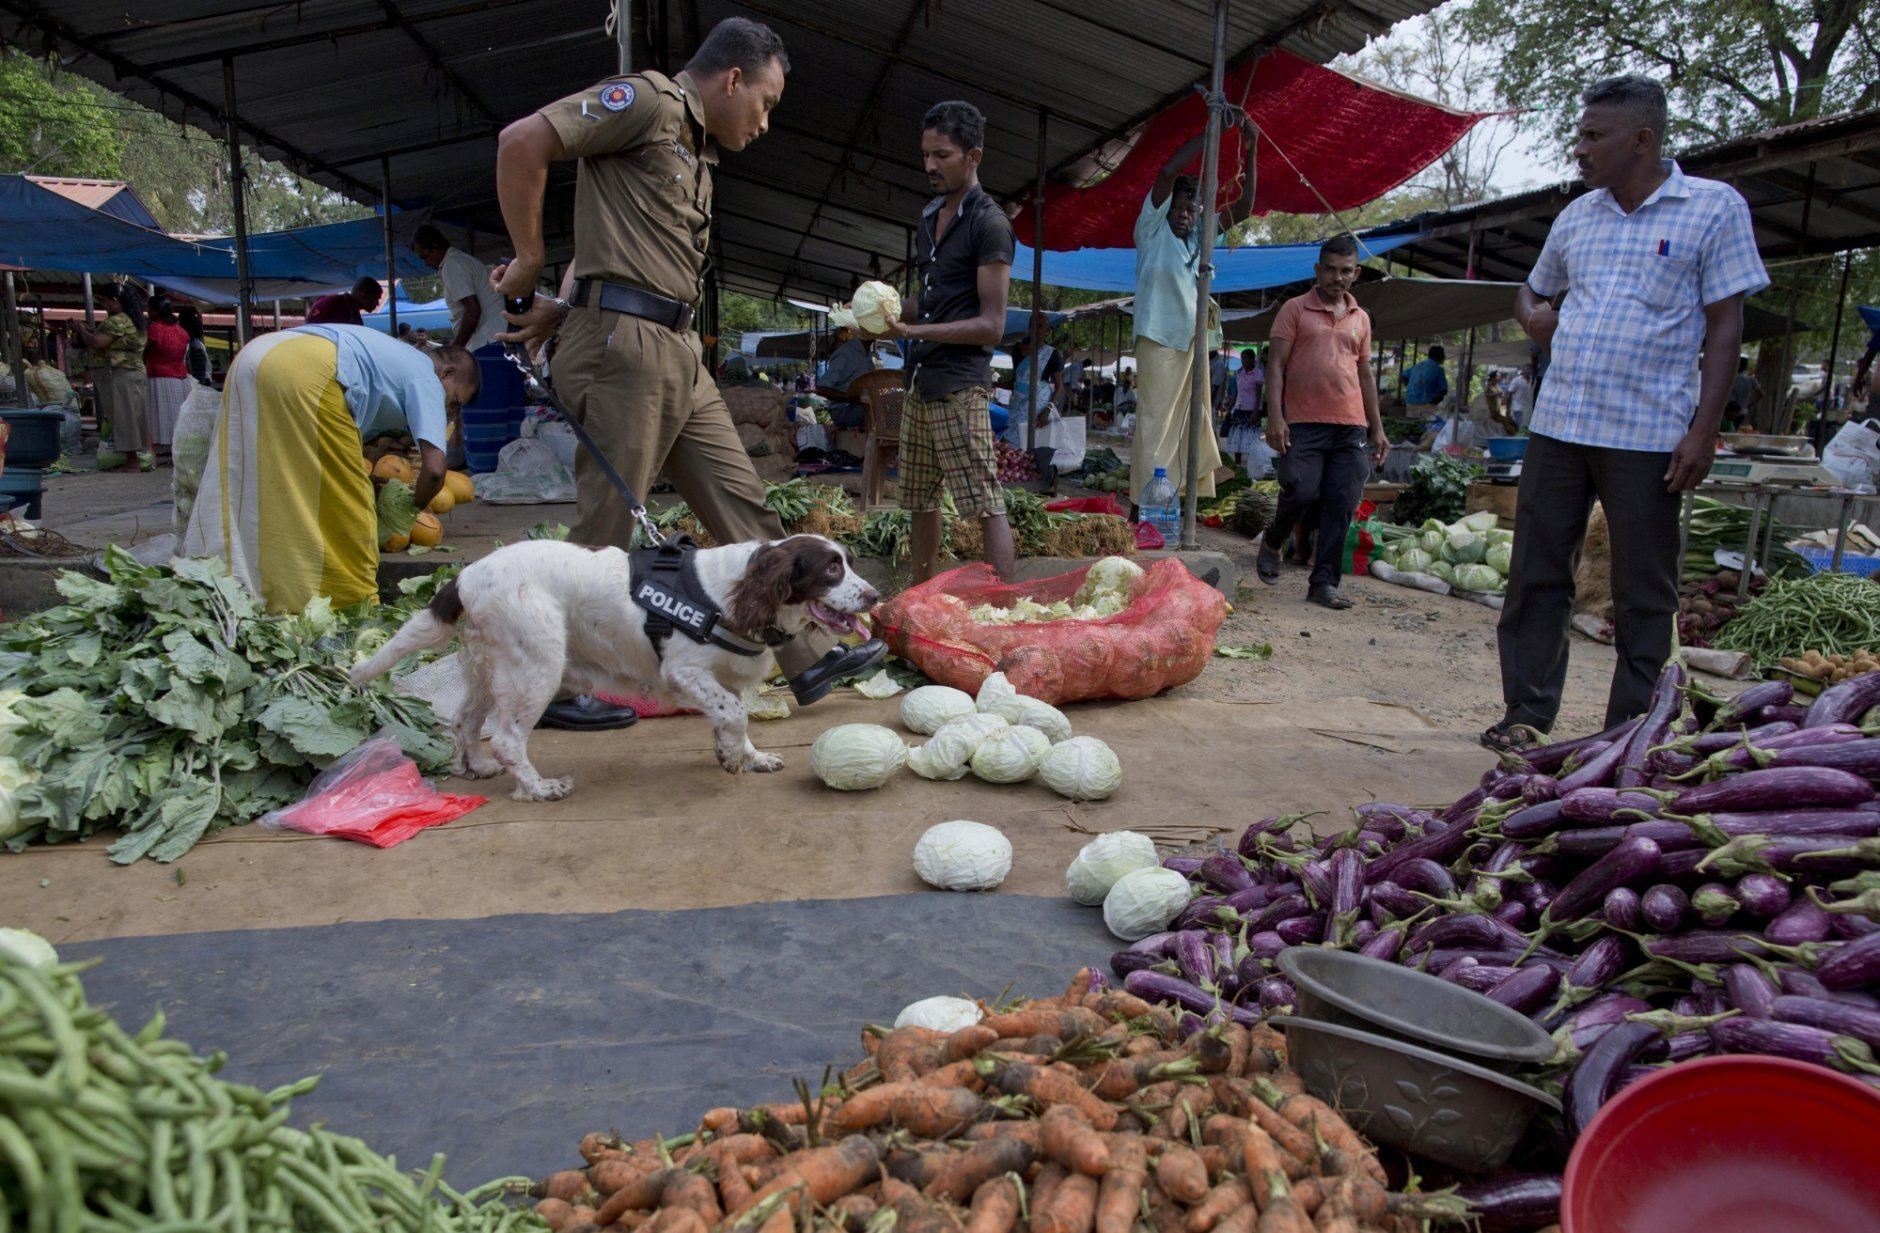 A police dog sniffs for explosives at a market in Ampara, Sri Lanka, Sunday, April 28, 2019. Police in Ampara showed The Associated Press on Sunday the explosives, chemicals and Islamic State flag they recovered from the site of one security force raid in the region as Sri Lanka's Catholics celebrated at televised Mass in the safety of their homes. (AP Photo/Gemunu Amarasinghe)